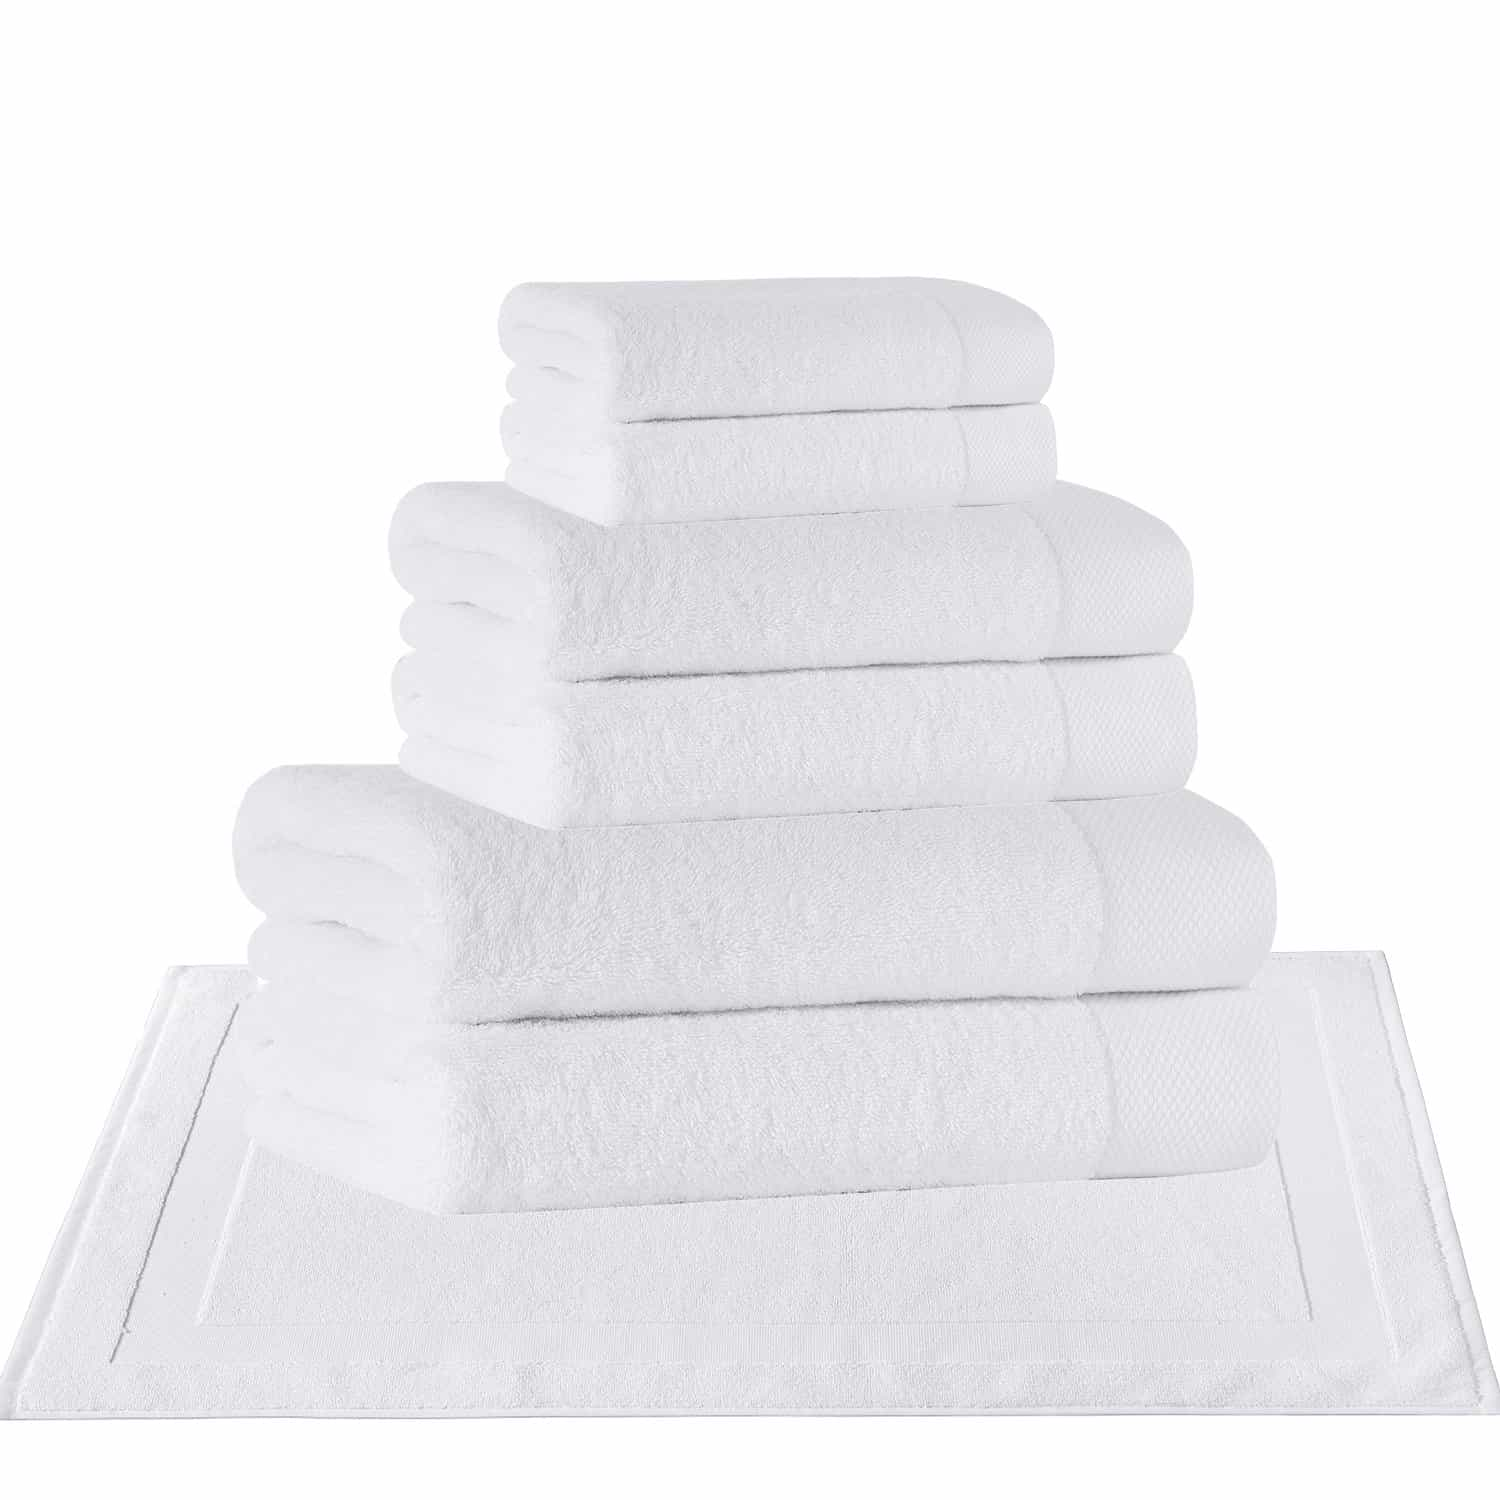 8 pcs Set ( 2 Bath, 2 Hand, 2 Wash, 2 Mat)